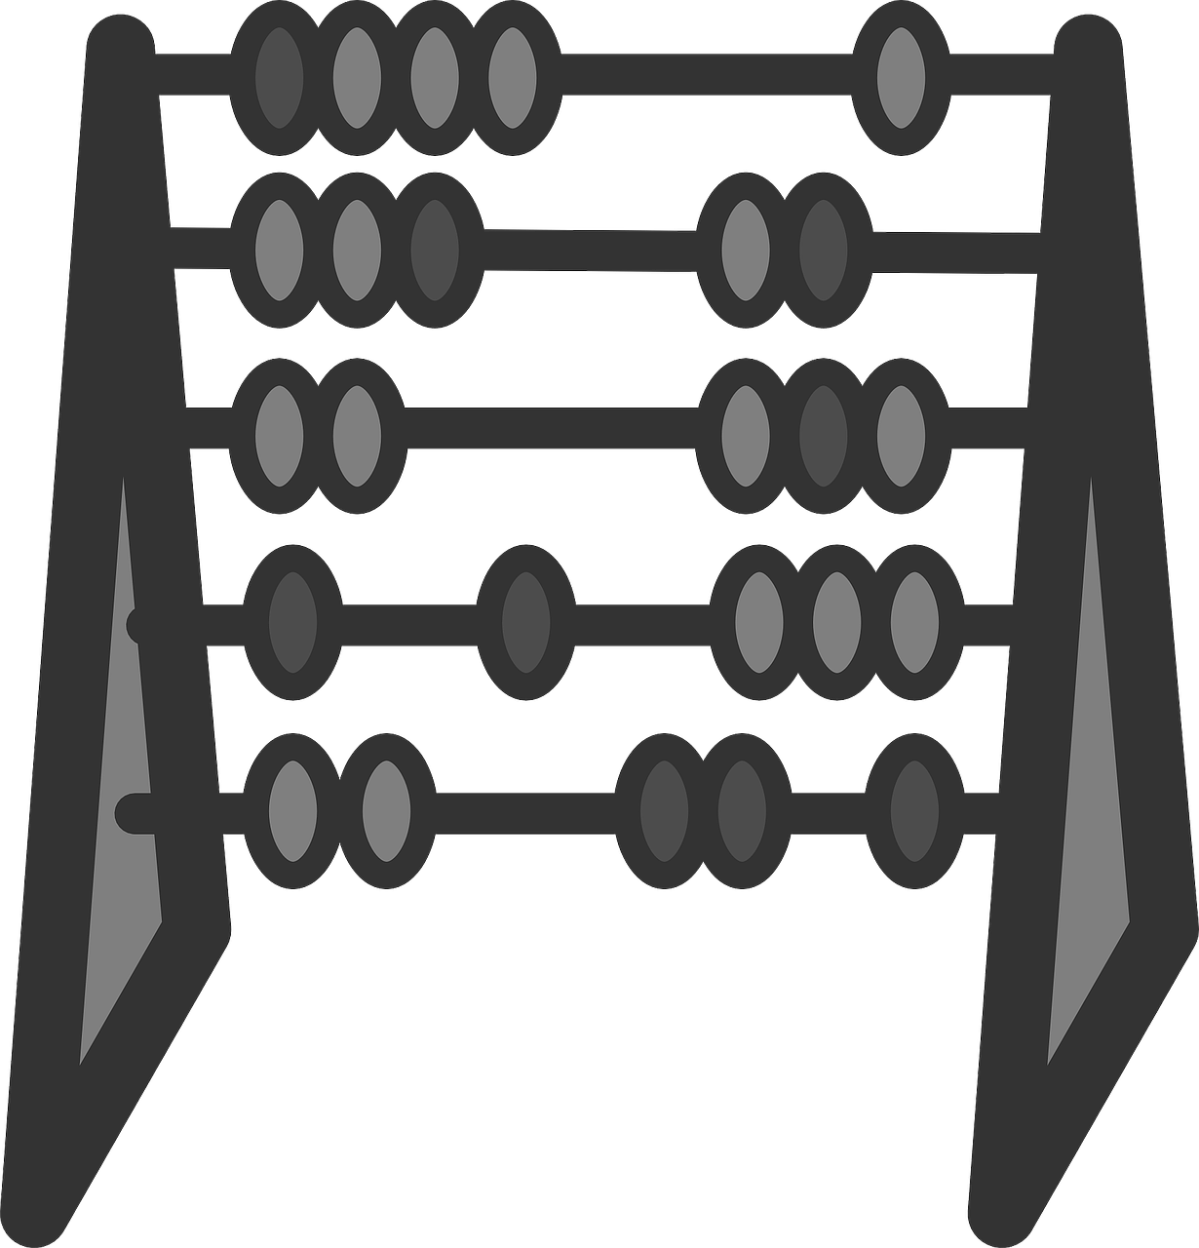 clipart showing an abacus